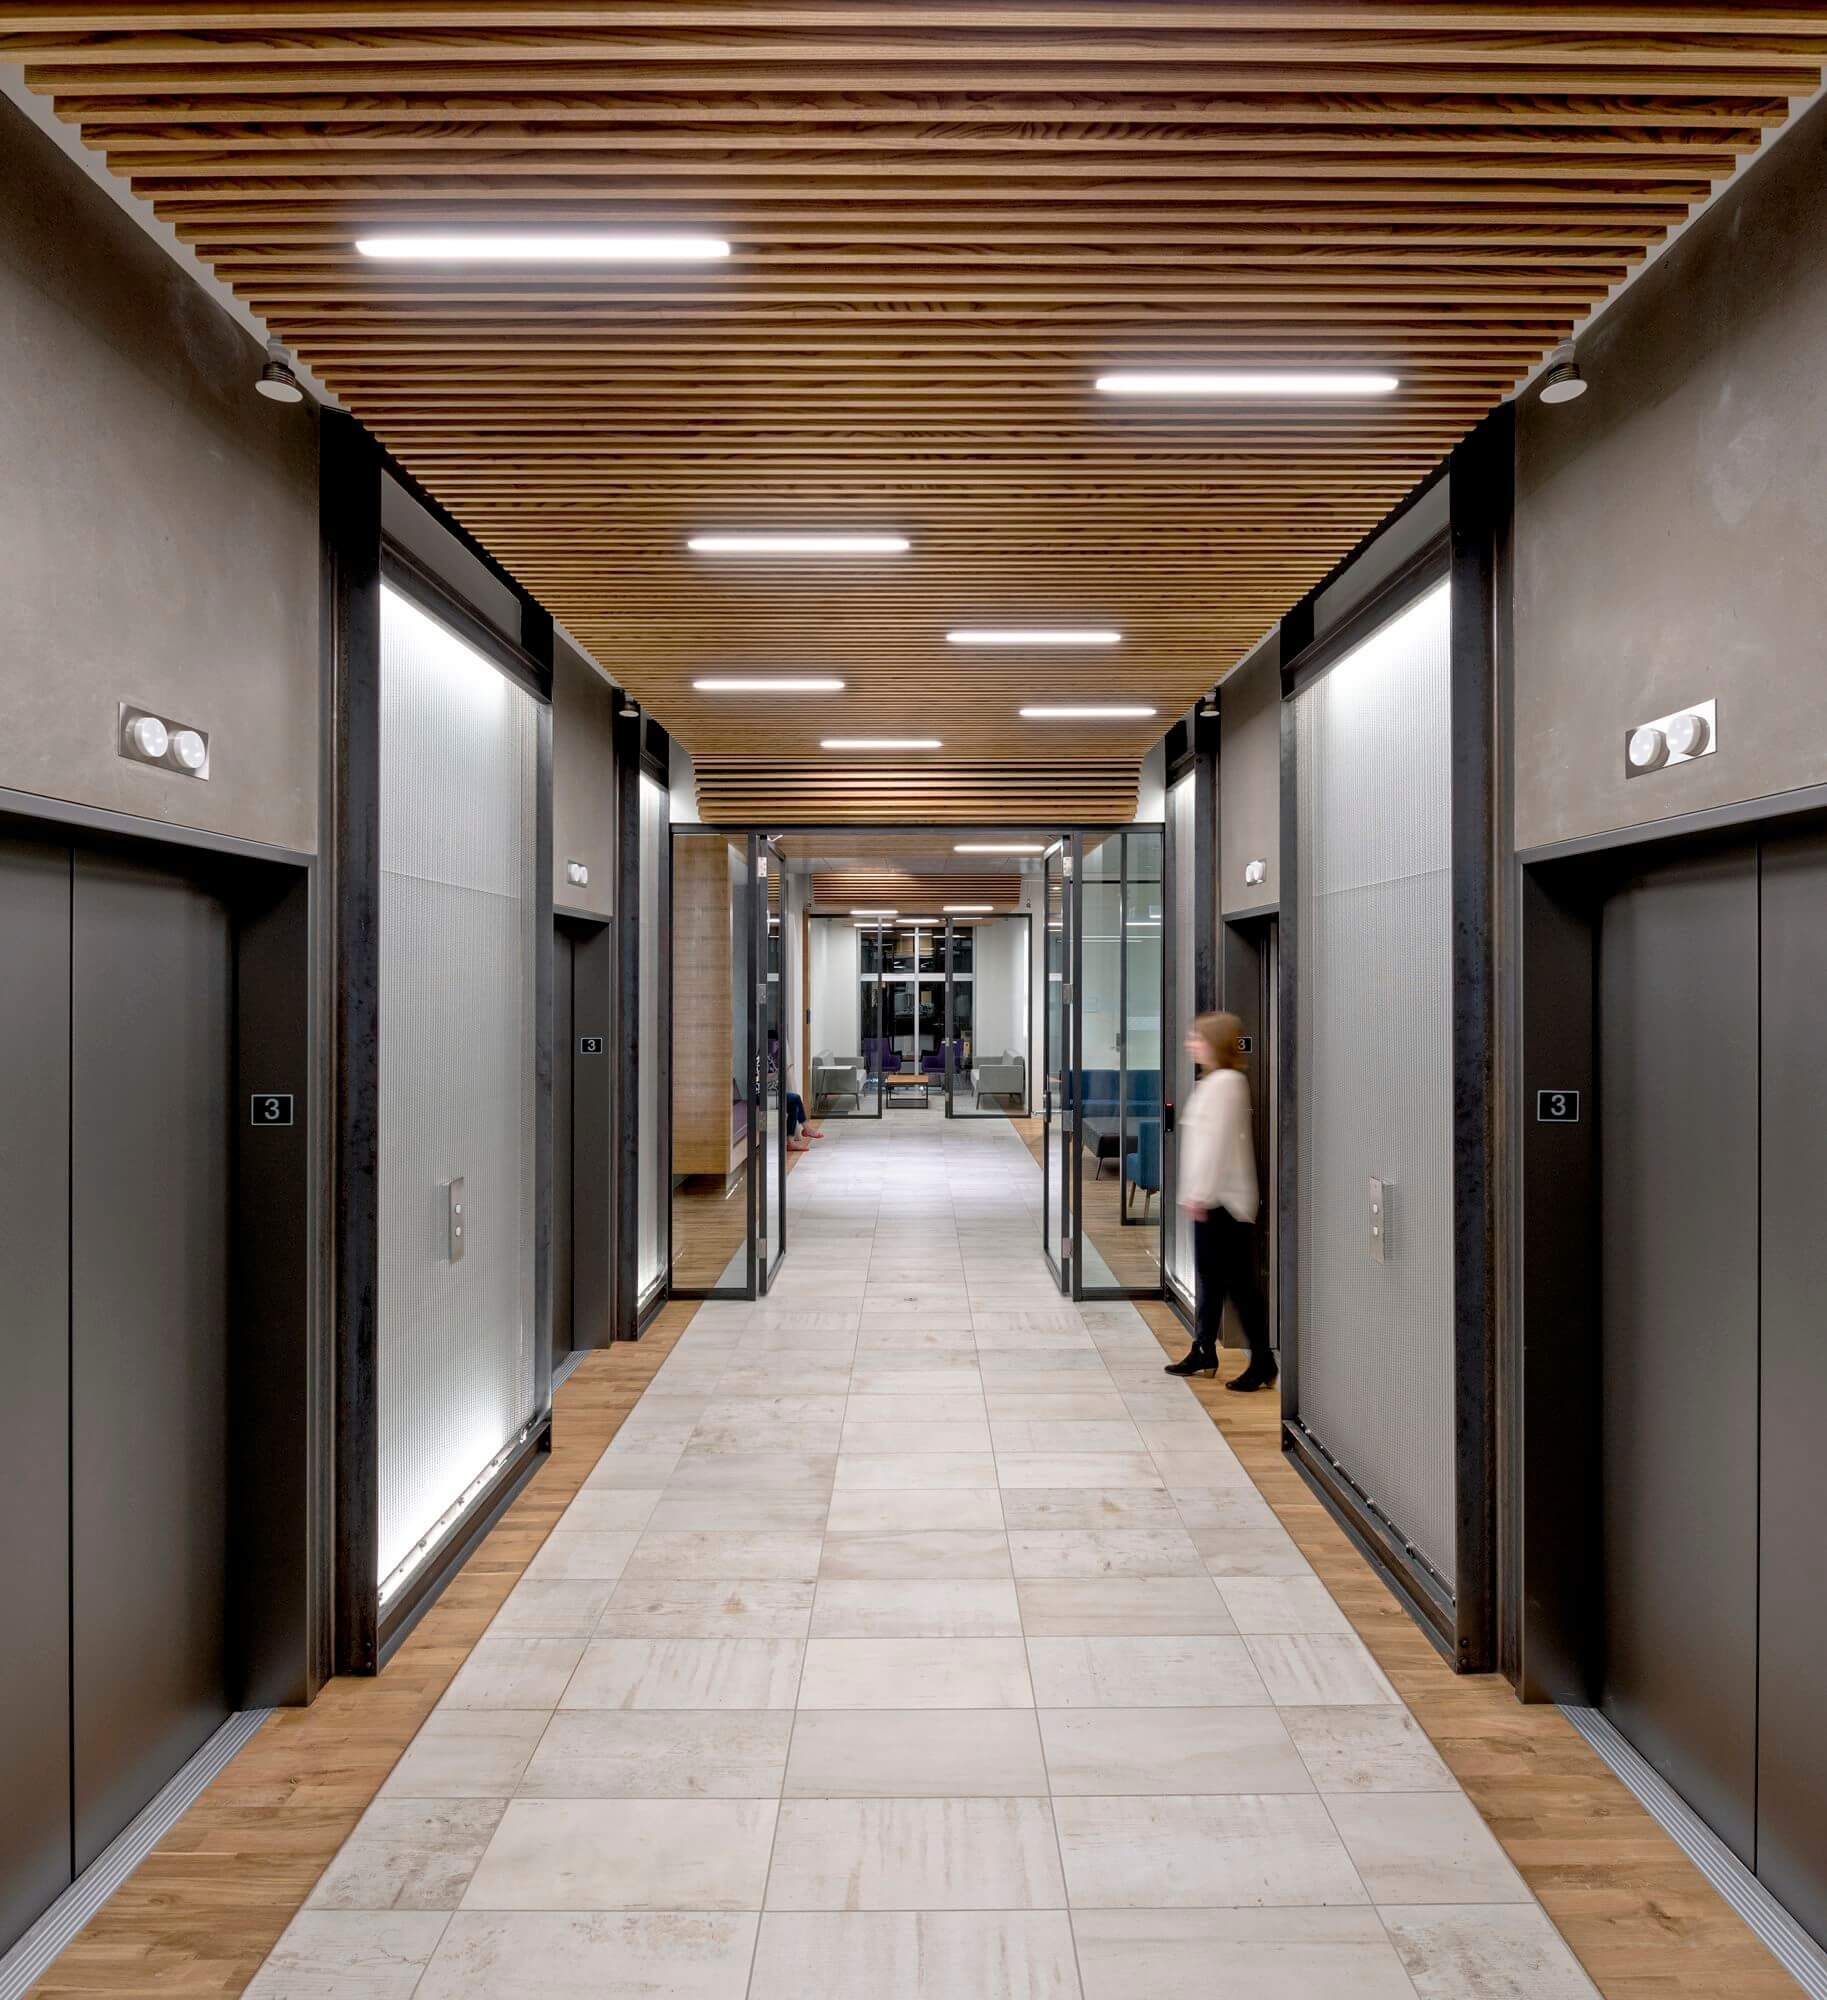 Steel, concrete, wood and glass create a warm industrial feeling throughout, and connect key design elements.  The wood from the historic stair is modernized in new wood flooring in the major circulation corridors, while the steel pipes are echoed in the elevator lobby framing and steel storefront glazing.